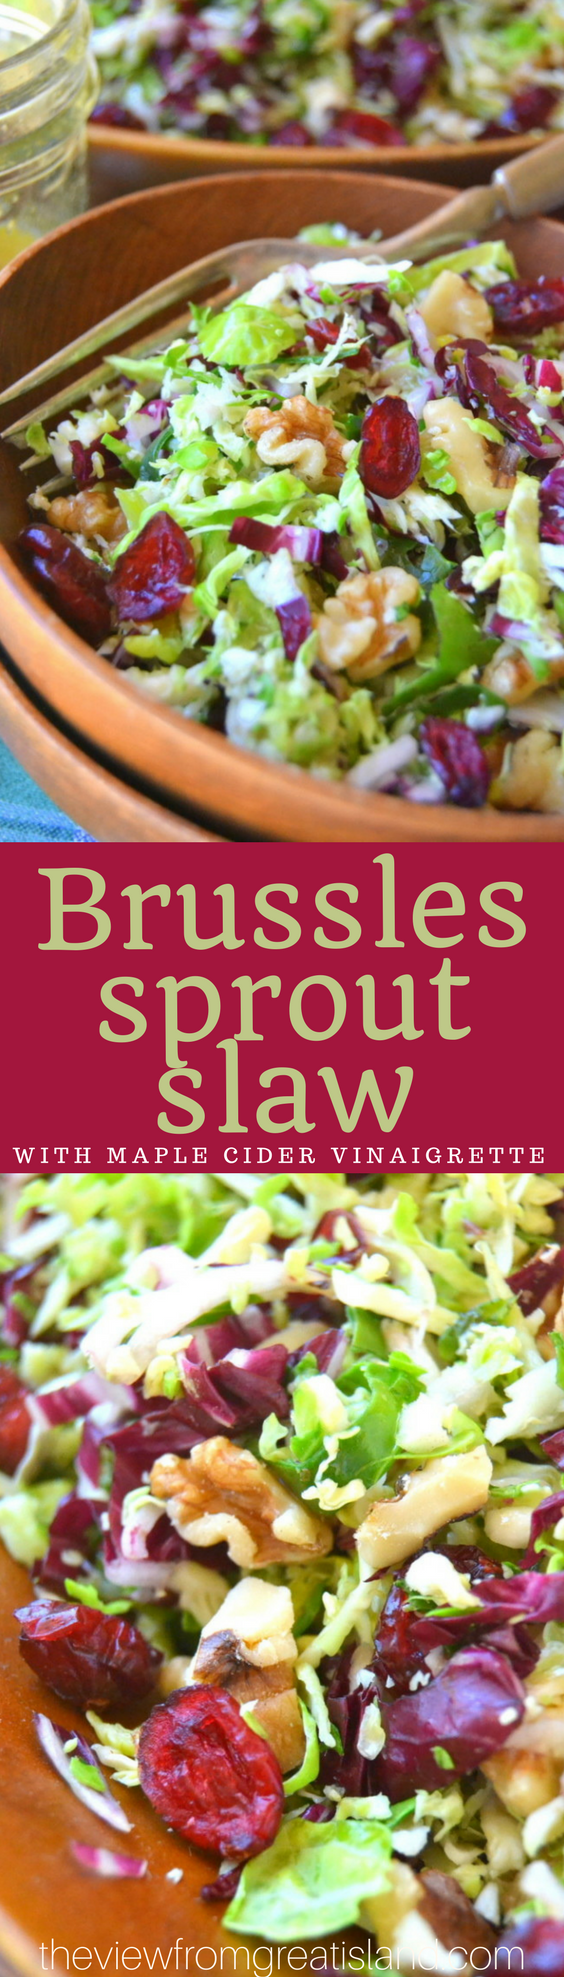 Brussels Sprout Slaw with Maple Cider Vinaigrette is a delicious healthy salad that adds a bit of fresh green to fall and holiday tables. #healthy #superfoodsalad #slaw #Brusselssprouts #bestbrusselssprouts #fallsalad #Thanksgiving #christmas #holidaysalad